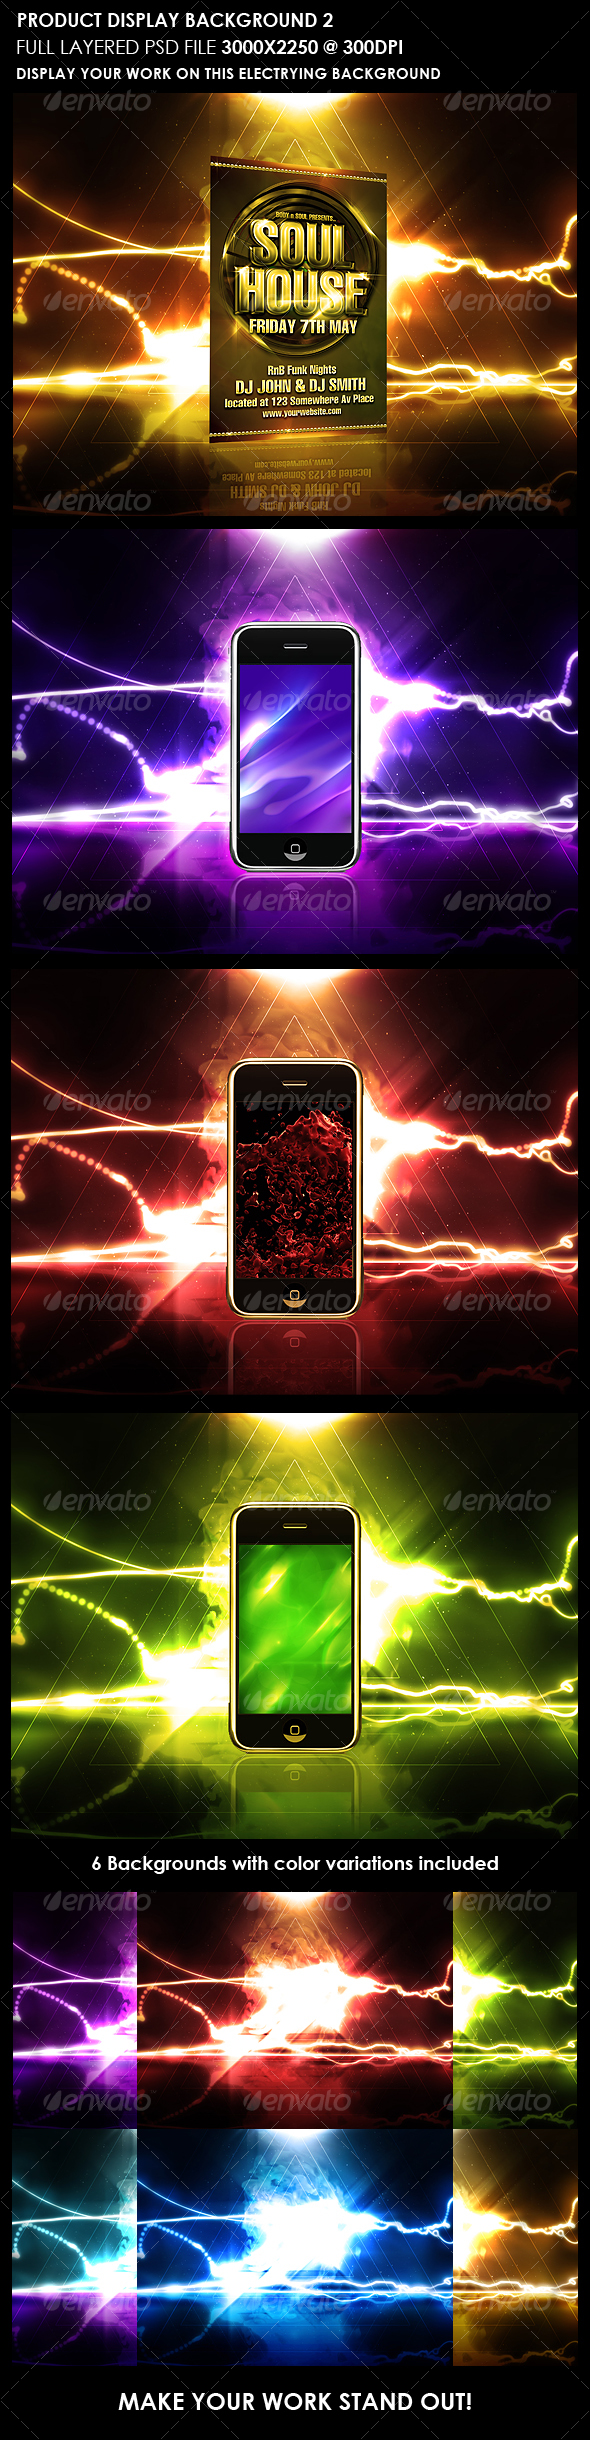 GraphicRiver Product Display Background 2 104723